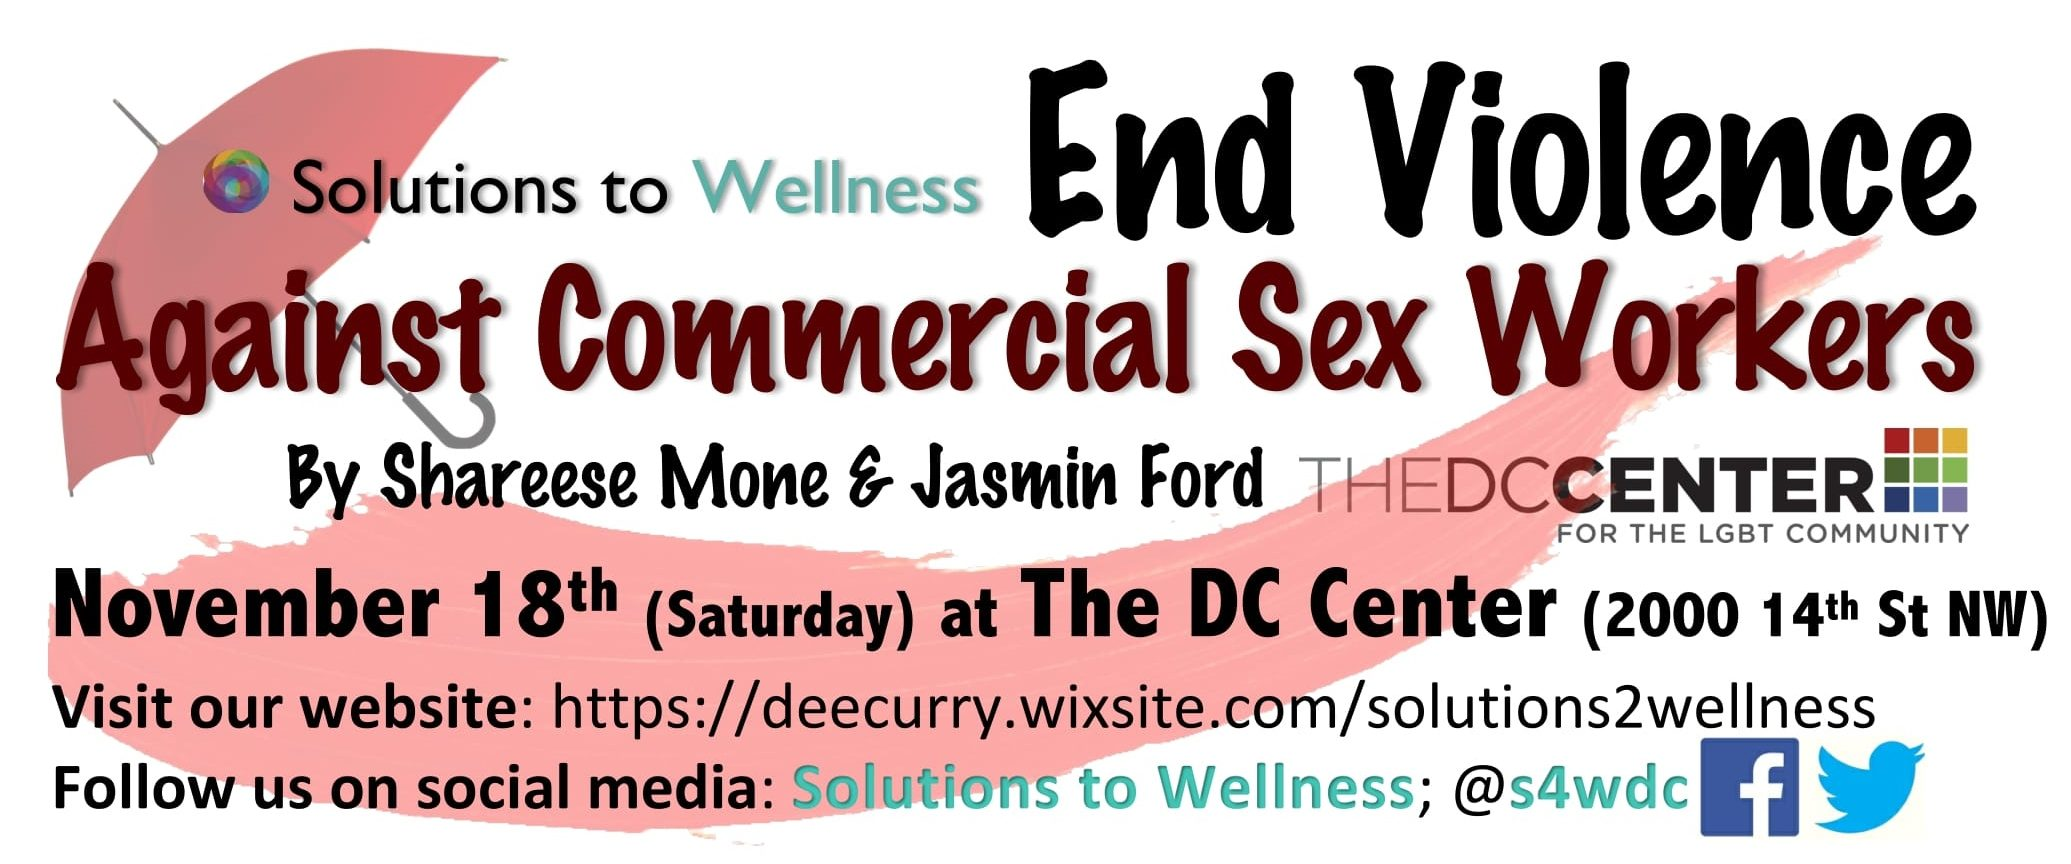 End Violence Against Commercial Sex Workers [Solutions to Wellness 2017]